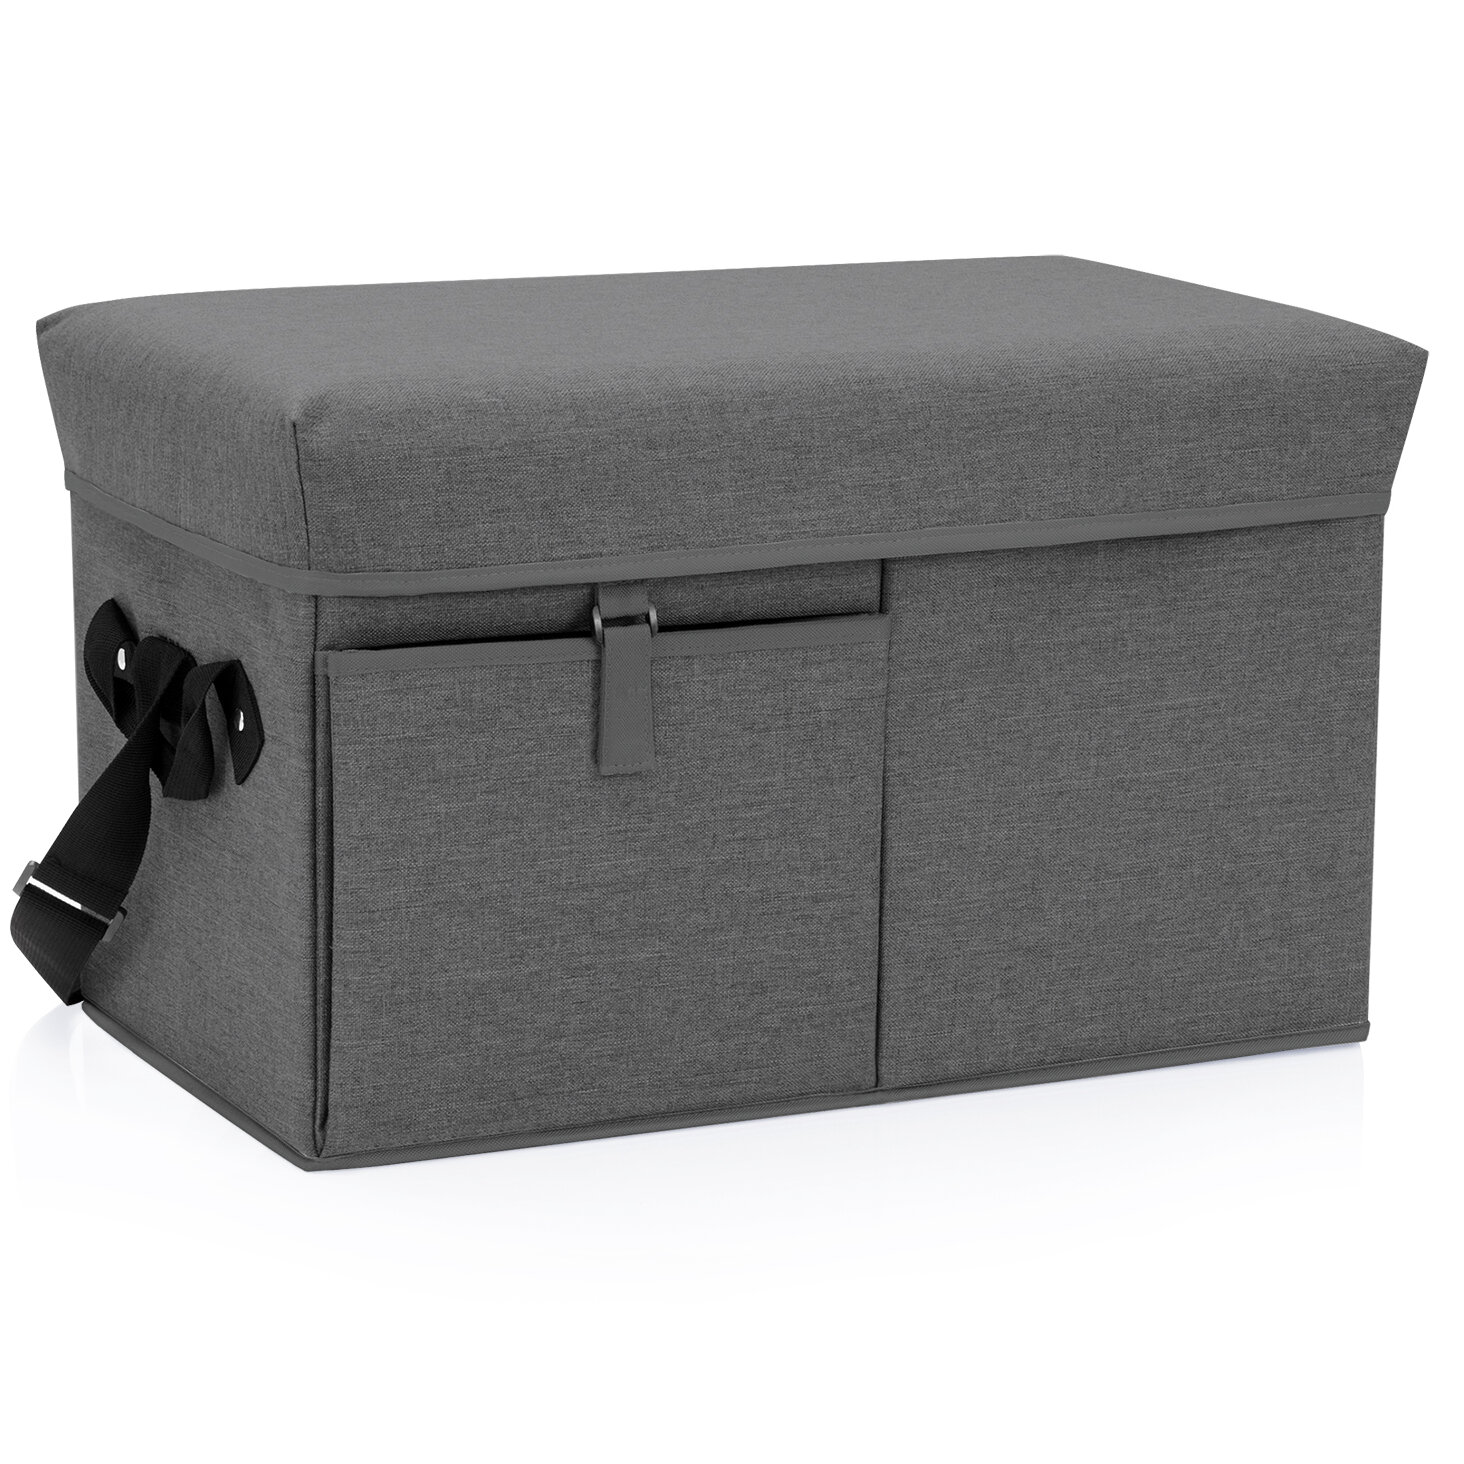 FLIP BOX Grey//Black MINI Insulated Box Holds 12 Cans Foldable Cooler on SALE!